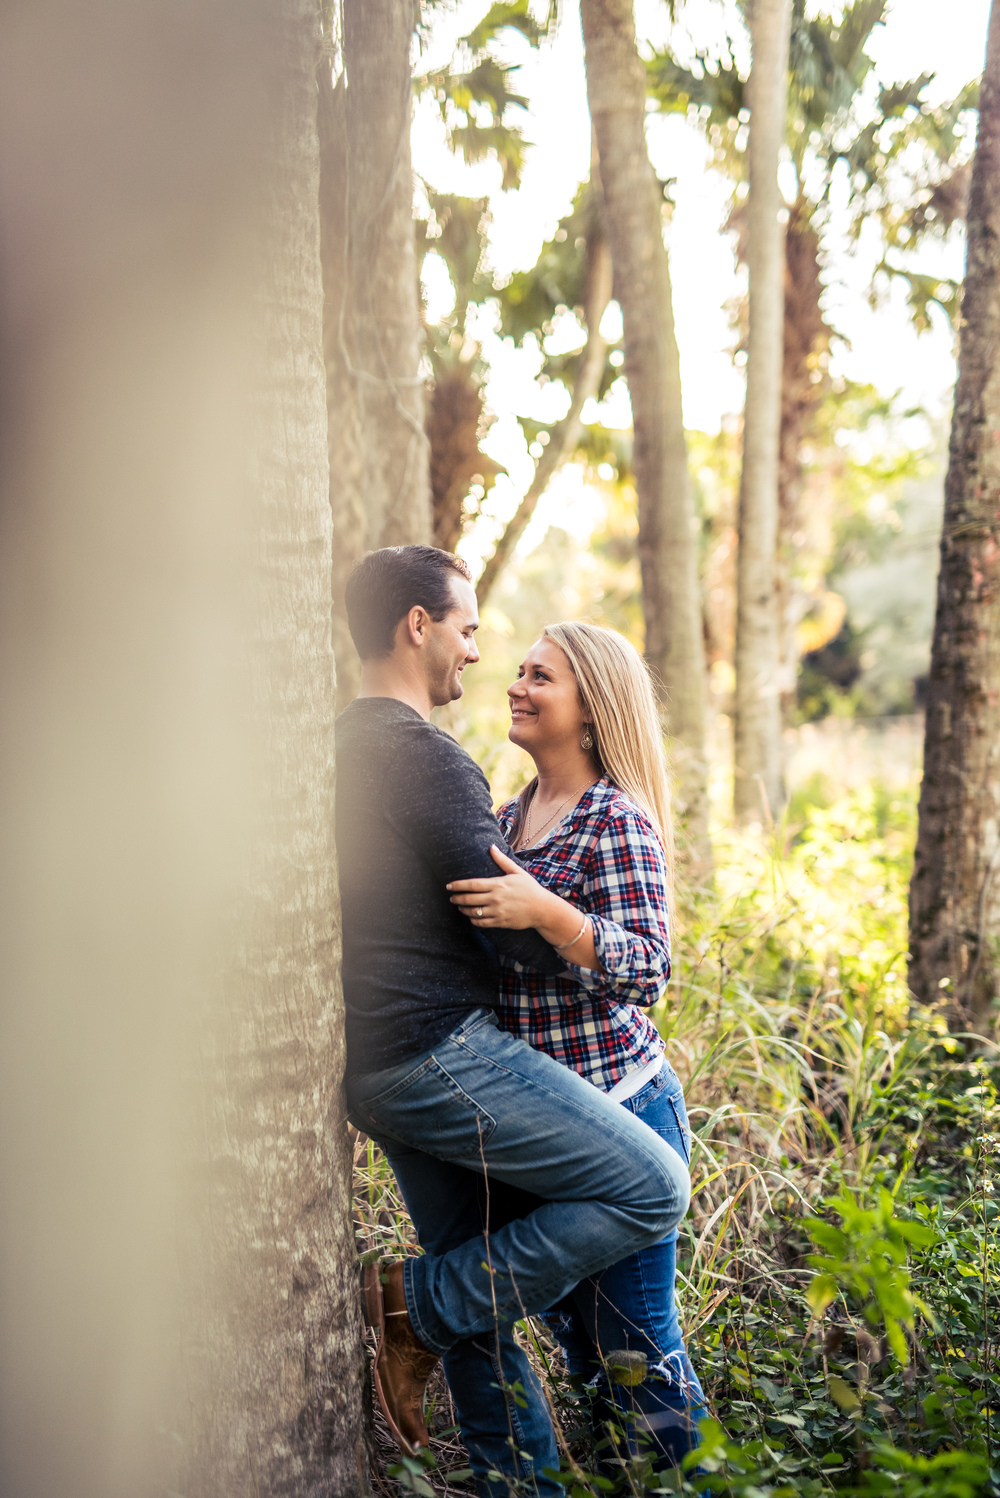 {Lexi&Joe'sEngagementSession}{RiverBendPark}{March2016}-0044.jpg